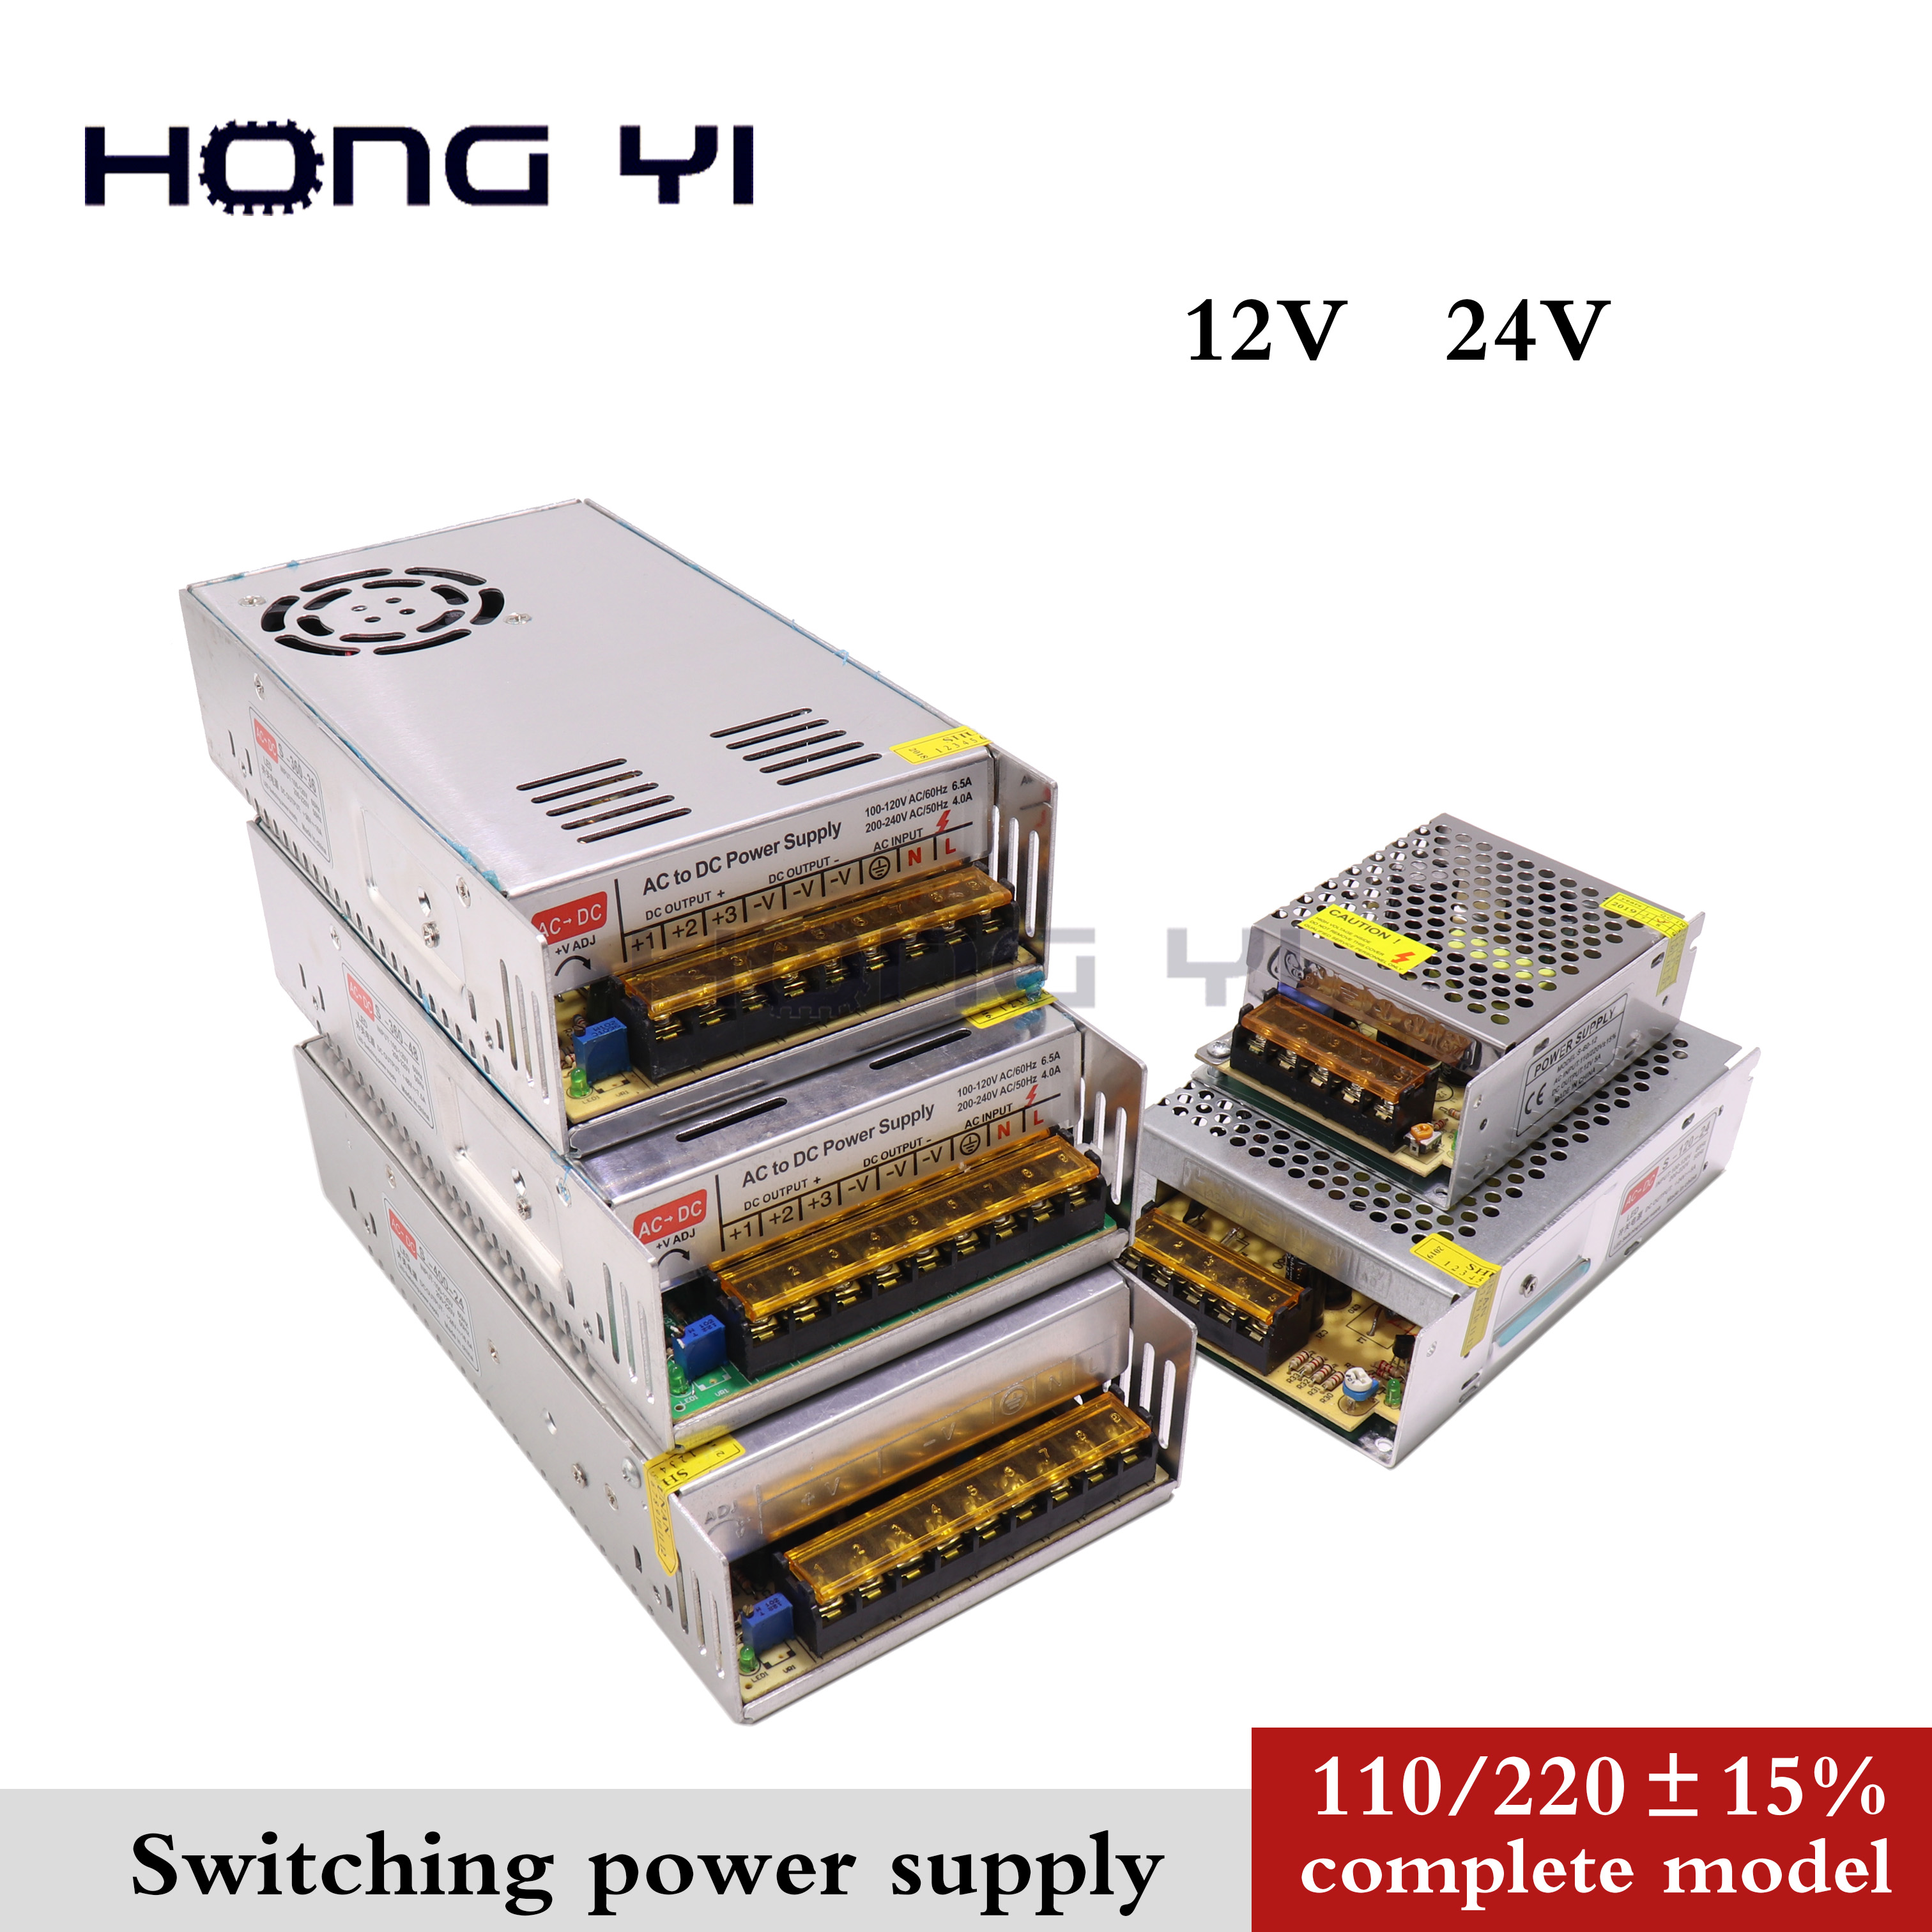 12V <font><b>Switching</b></font> <font><b>Power</b></font> <font><b>Supply</b></font> 2A 3A 5A 10A 15A 20A 30A <font><b>40A</b></font> <font><b>Power</b></font> <font><b>Supply</b></font> <font><b>Switching</b></font> <font><b>Power</b></font> AC 110V 220V To DC <font><b>24V</b></font> For Led Strip Lights image